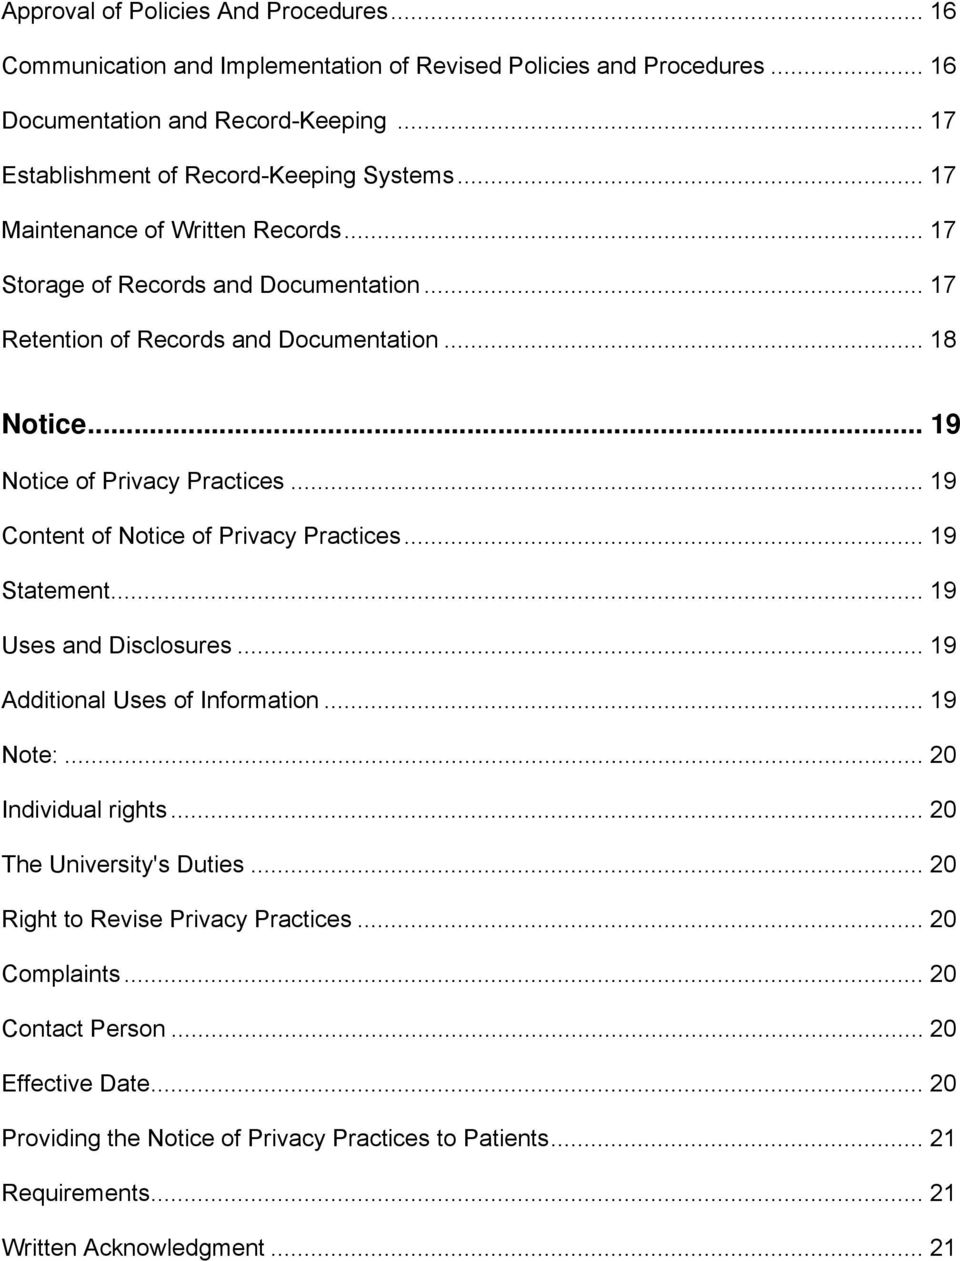 .. 19 Content of Notice of Privacy Practices... 19 Statement... 19 Uses and Disclosures... 19 Additional Uses of Information... 19 Note:... 20 Individual rights... 20 The University's Duties.